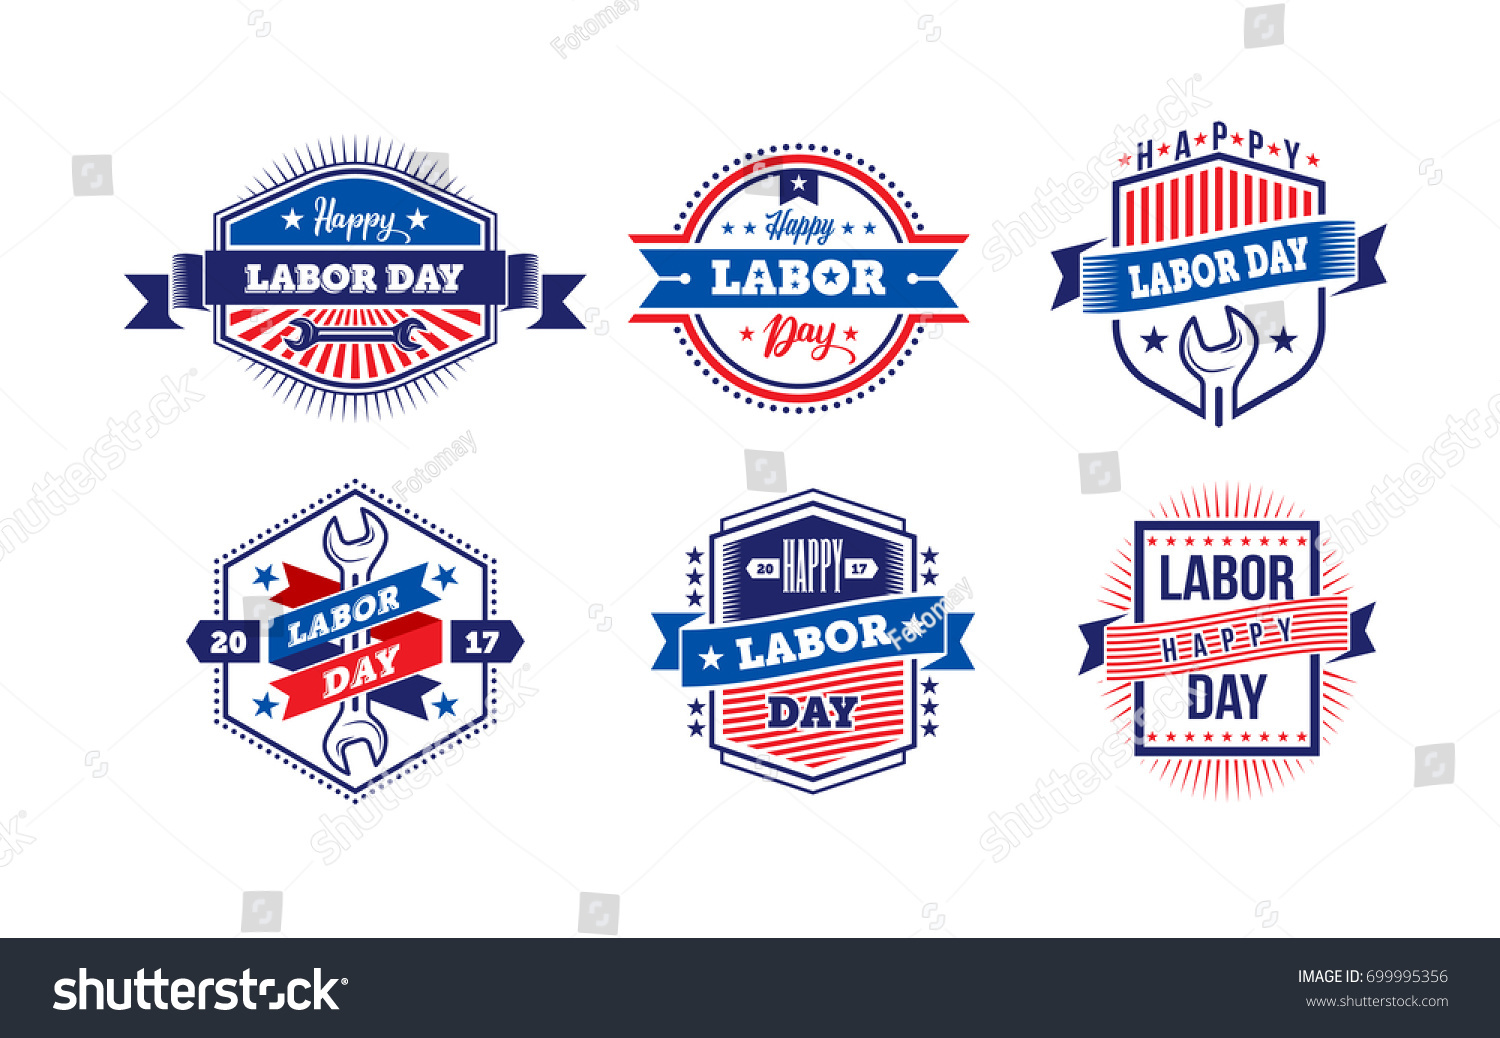 Happy Labor Day America Labor Day Greeting Stock Vector Royalty